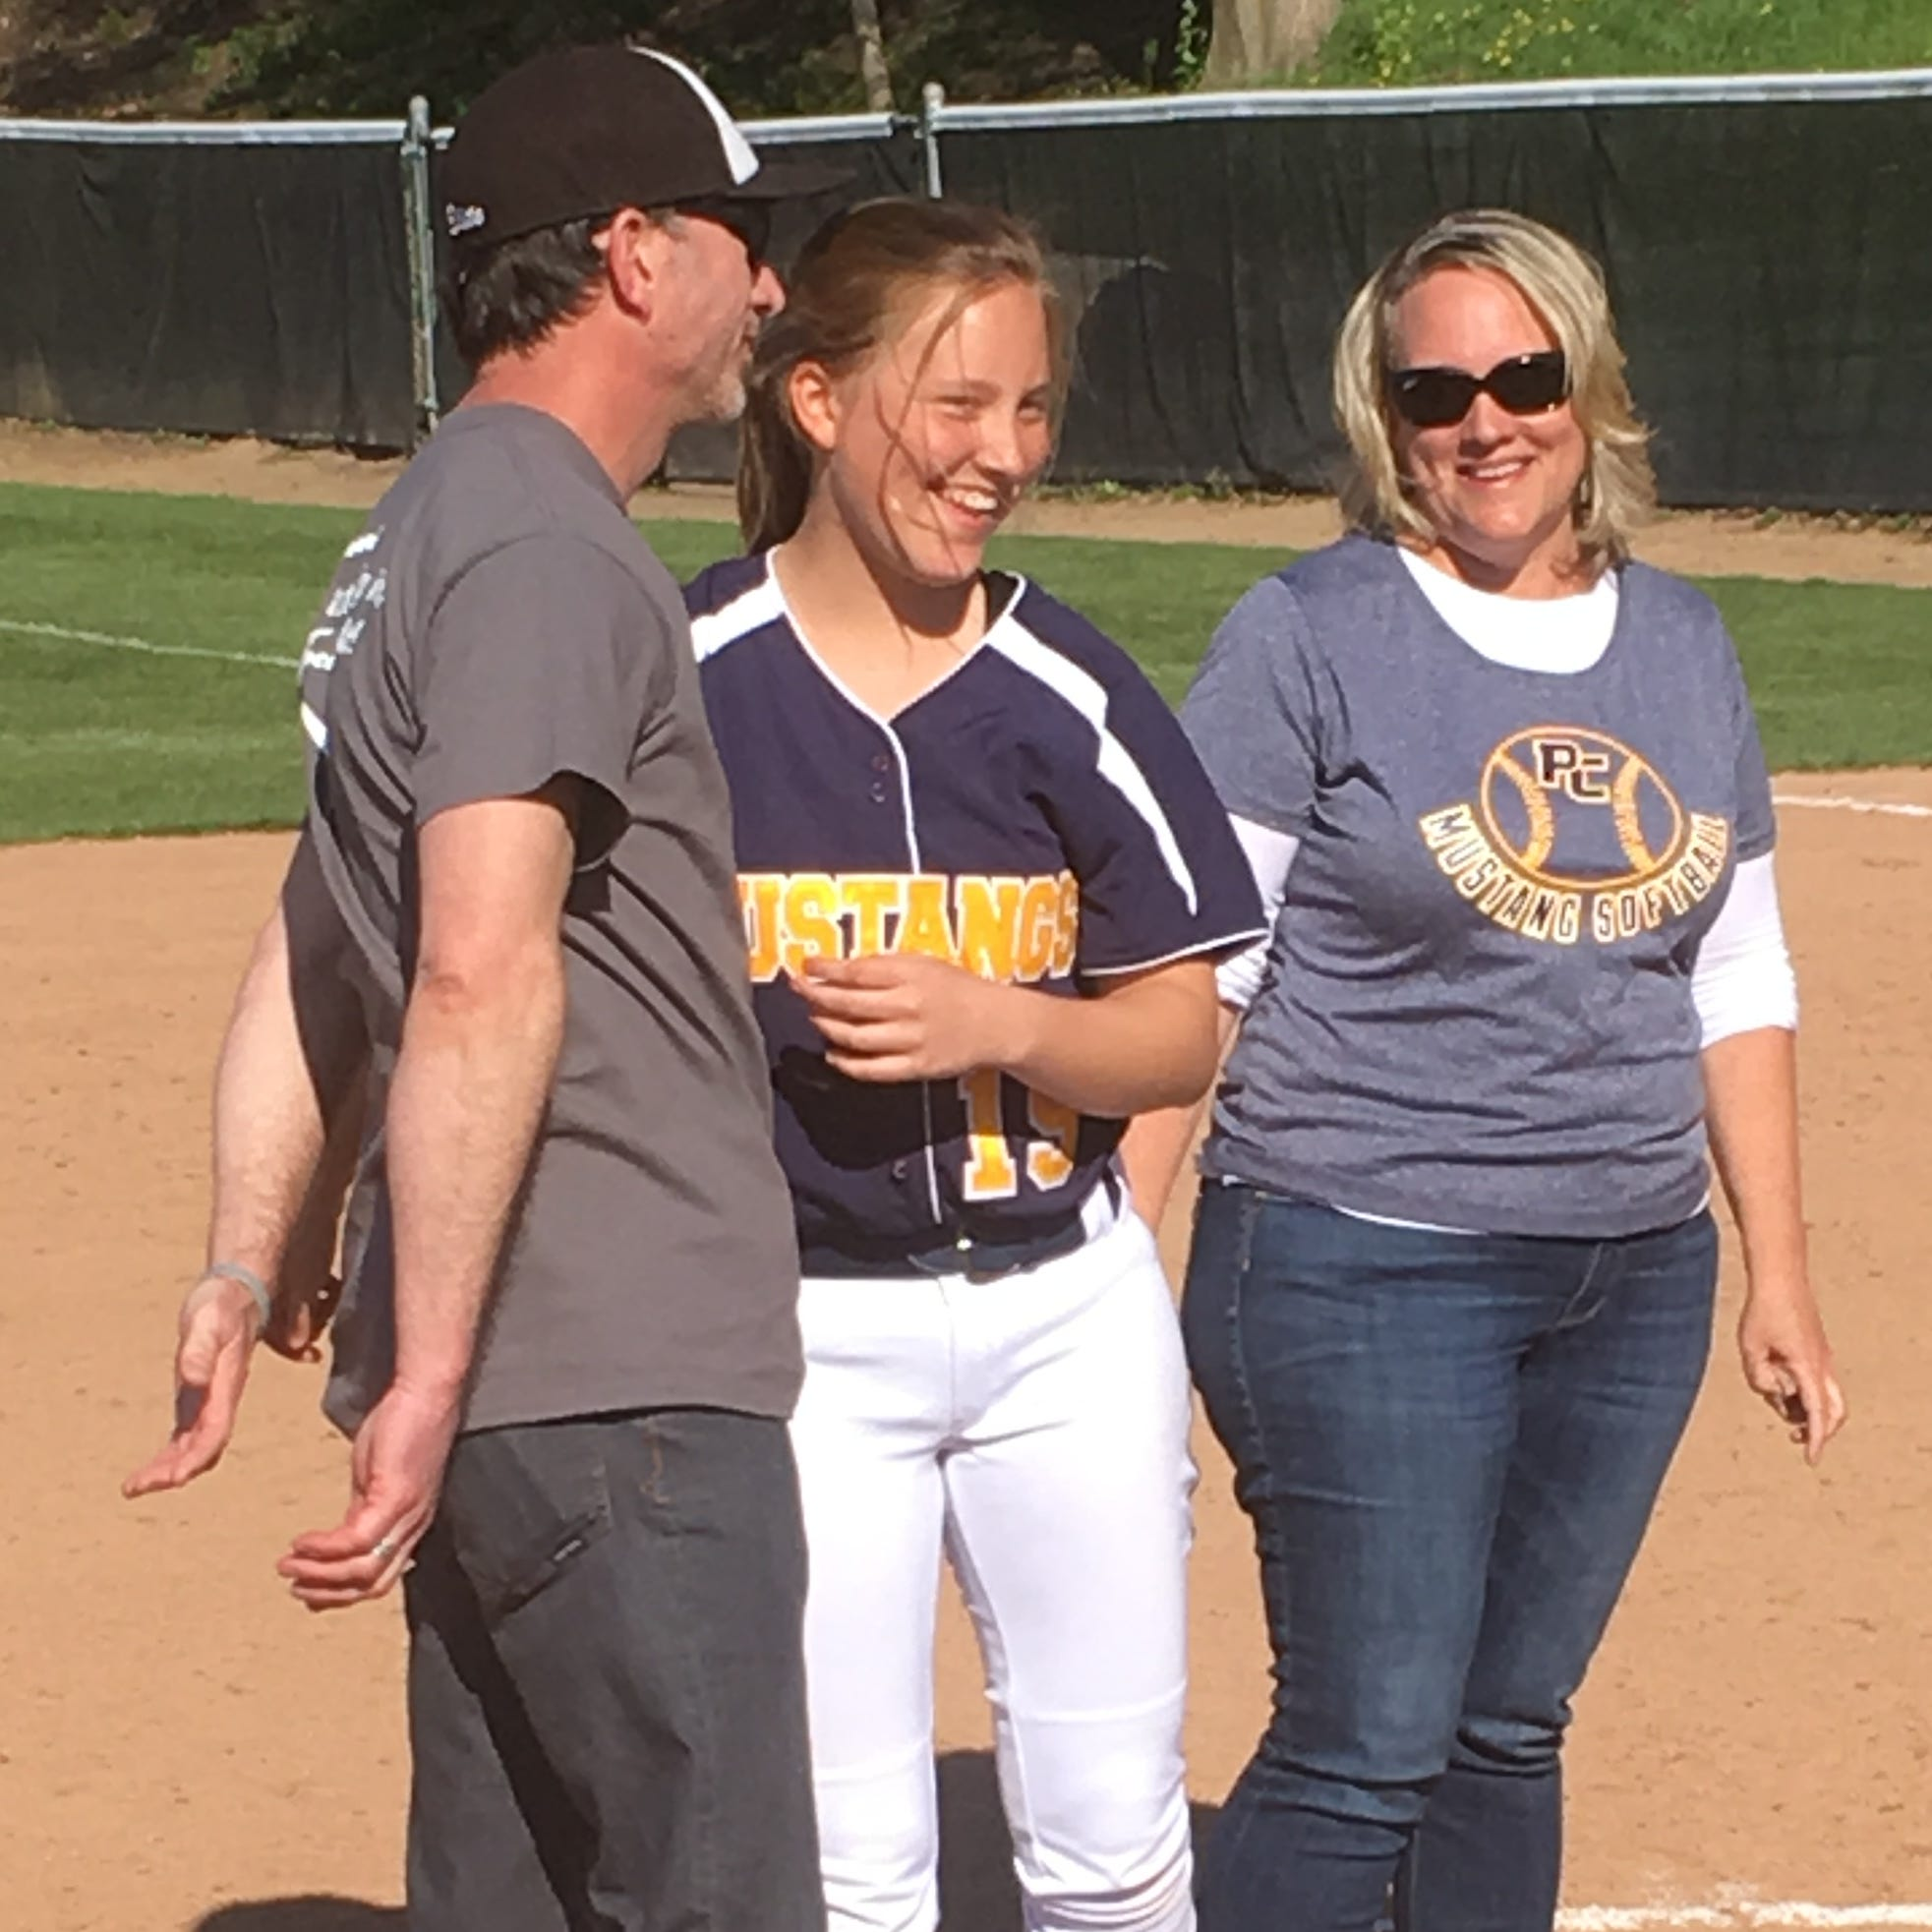 'The smile of this team': Portage Central's Sophie Varney wages spirited battle against DIPG